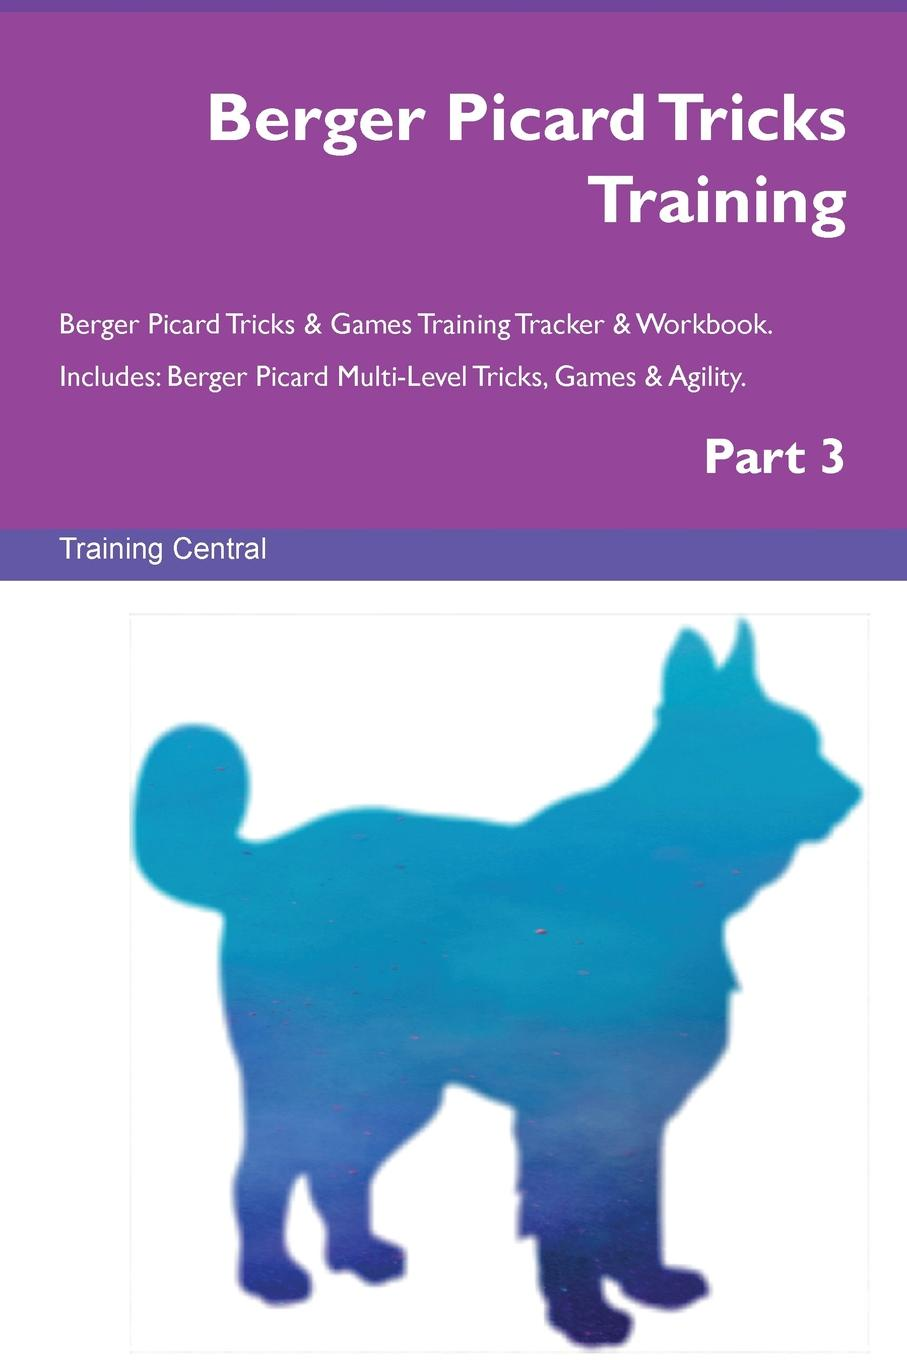 Training Central Berger Picard Tricks Training Berger Picard Tricks . Games Training Tracker . Workbook. Includes. Berger Picard Multi-Level Tricks, Games . Agility. Part 3